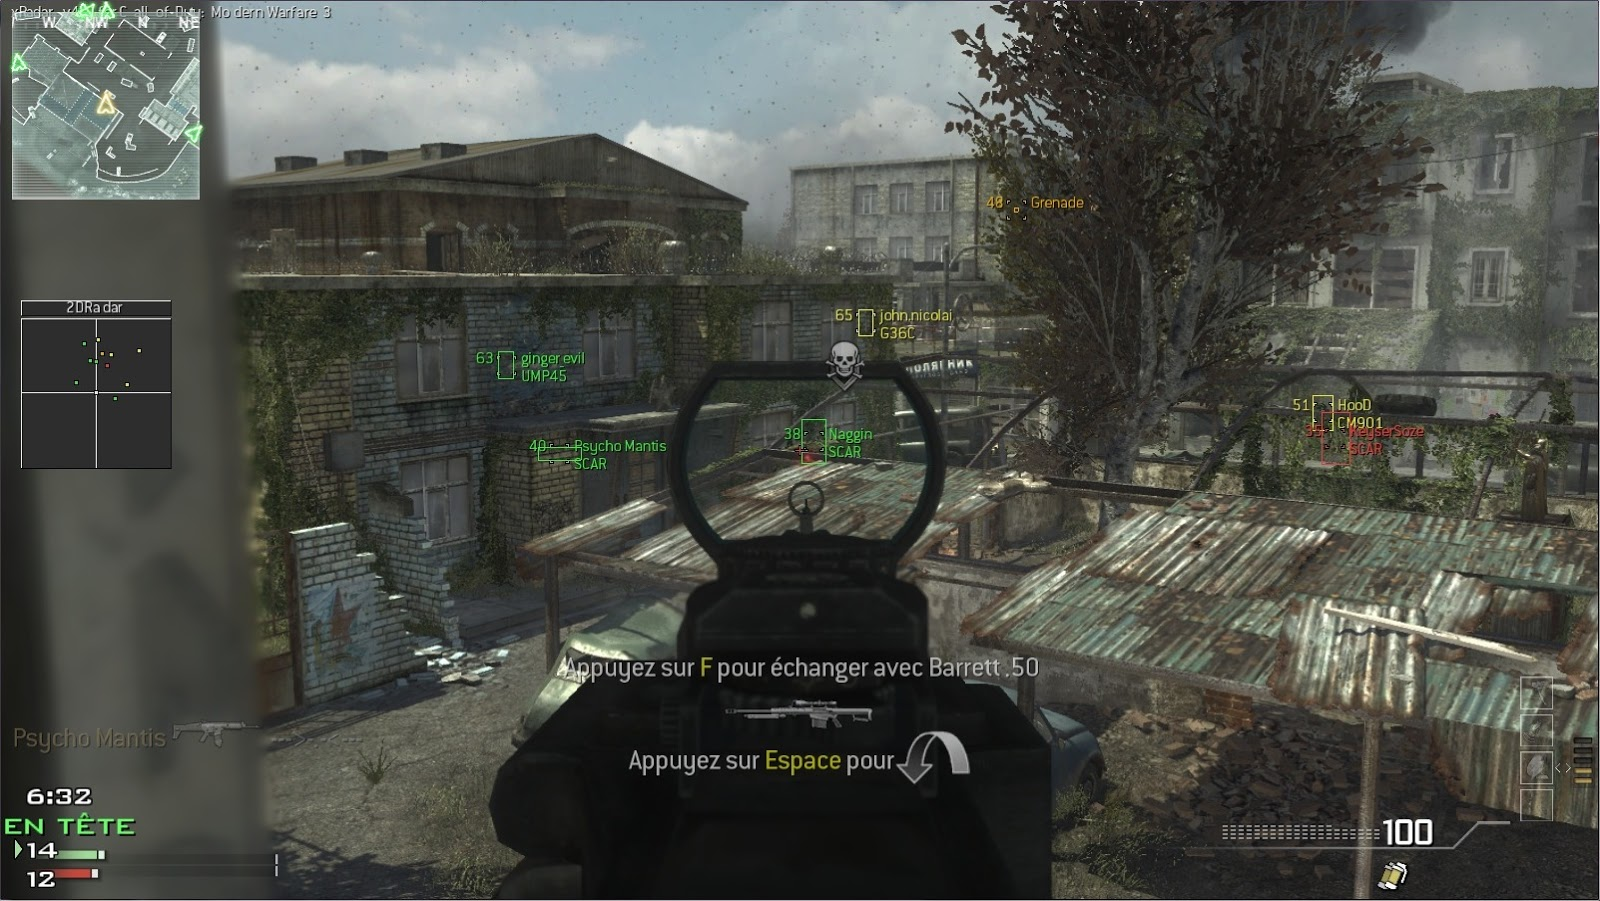 Call of duty mw3 hack tool | [Information] CoD8 Modern